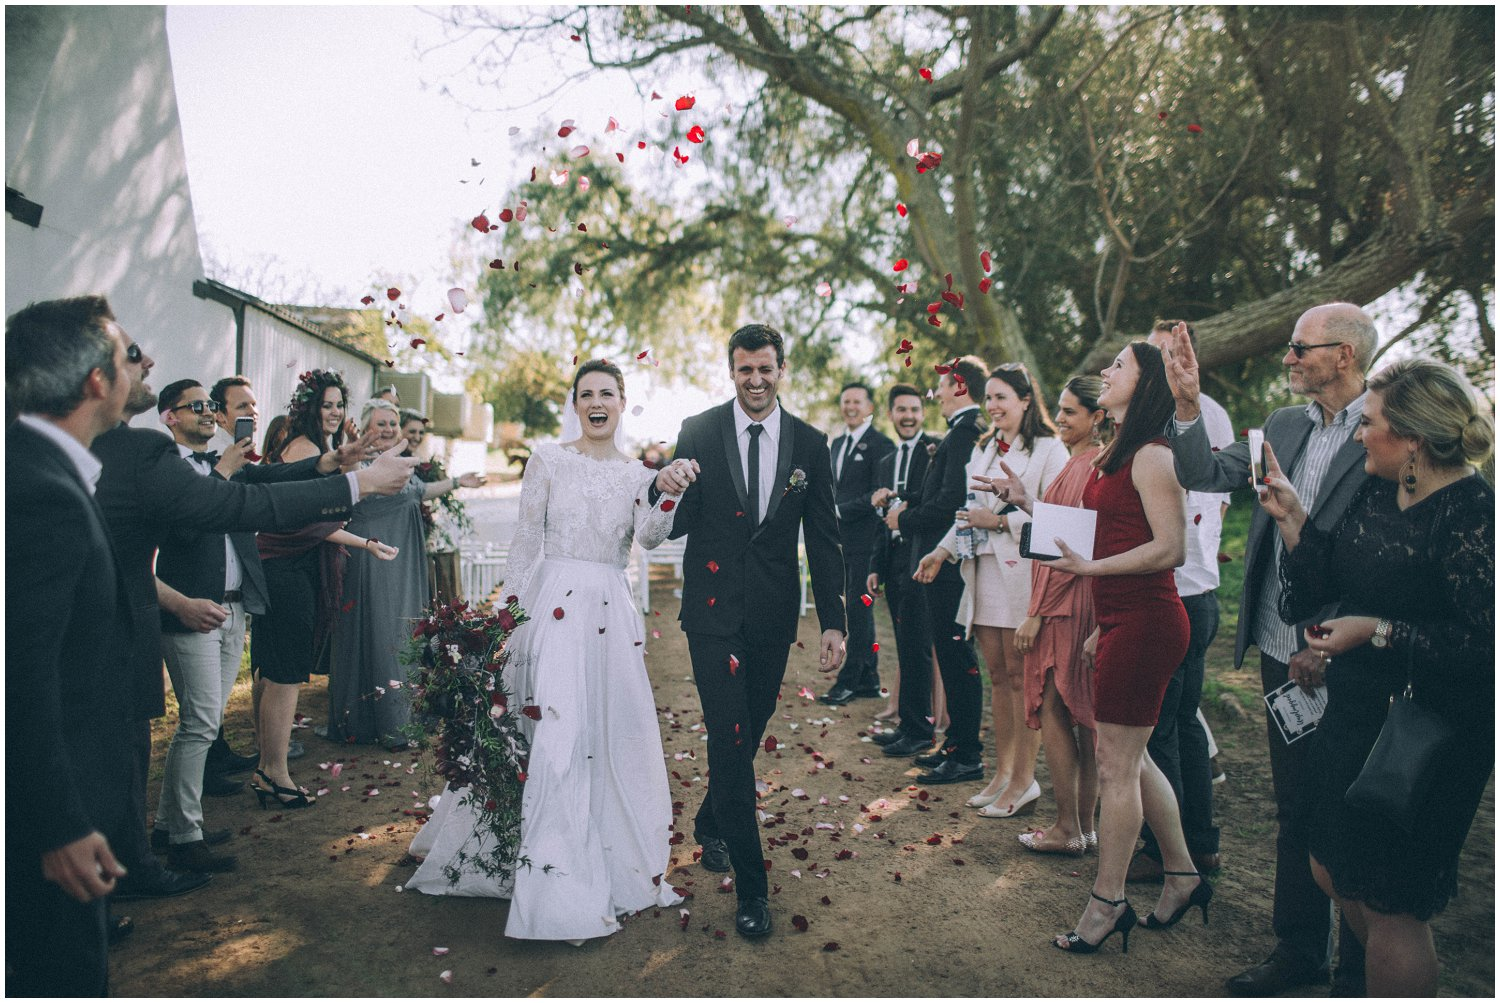 Top Wedding Photographer Cape Town South Africa Artistic Creative Documentary Wedding Photography Rue Kruger_1207.jpg